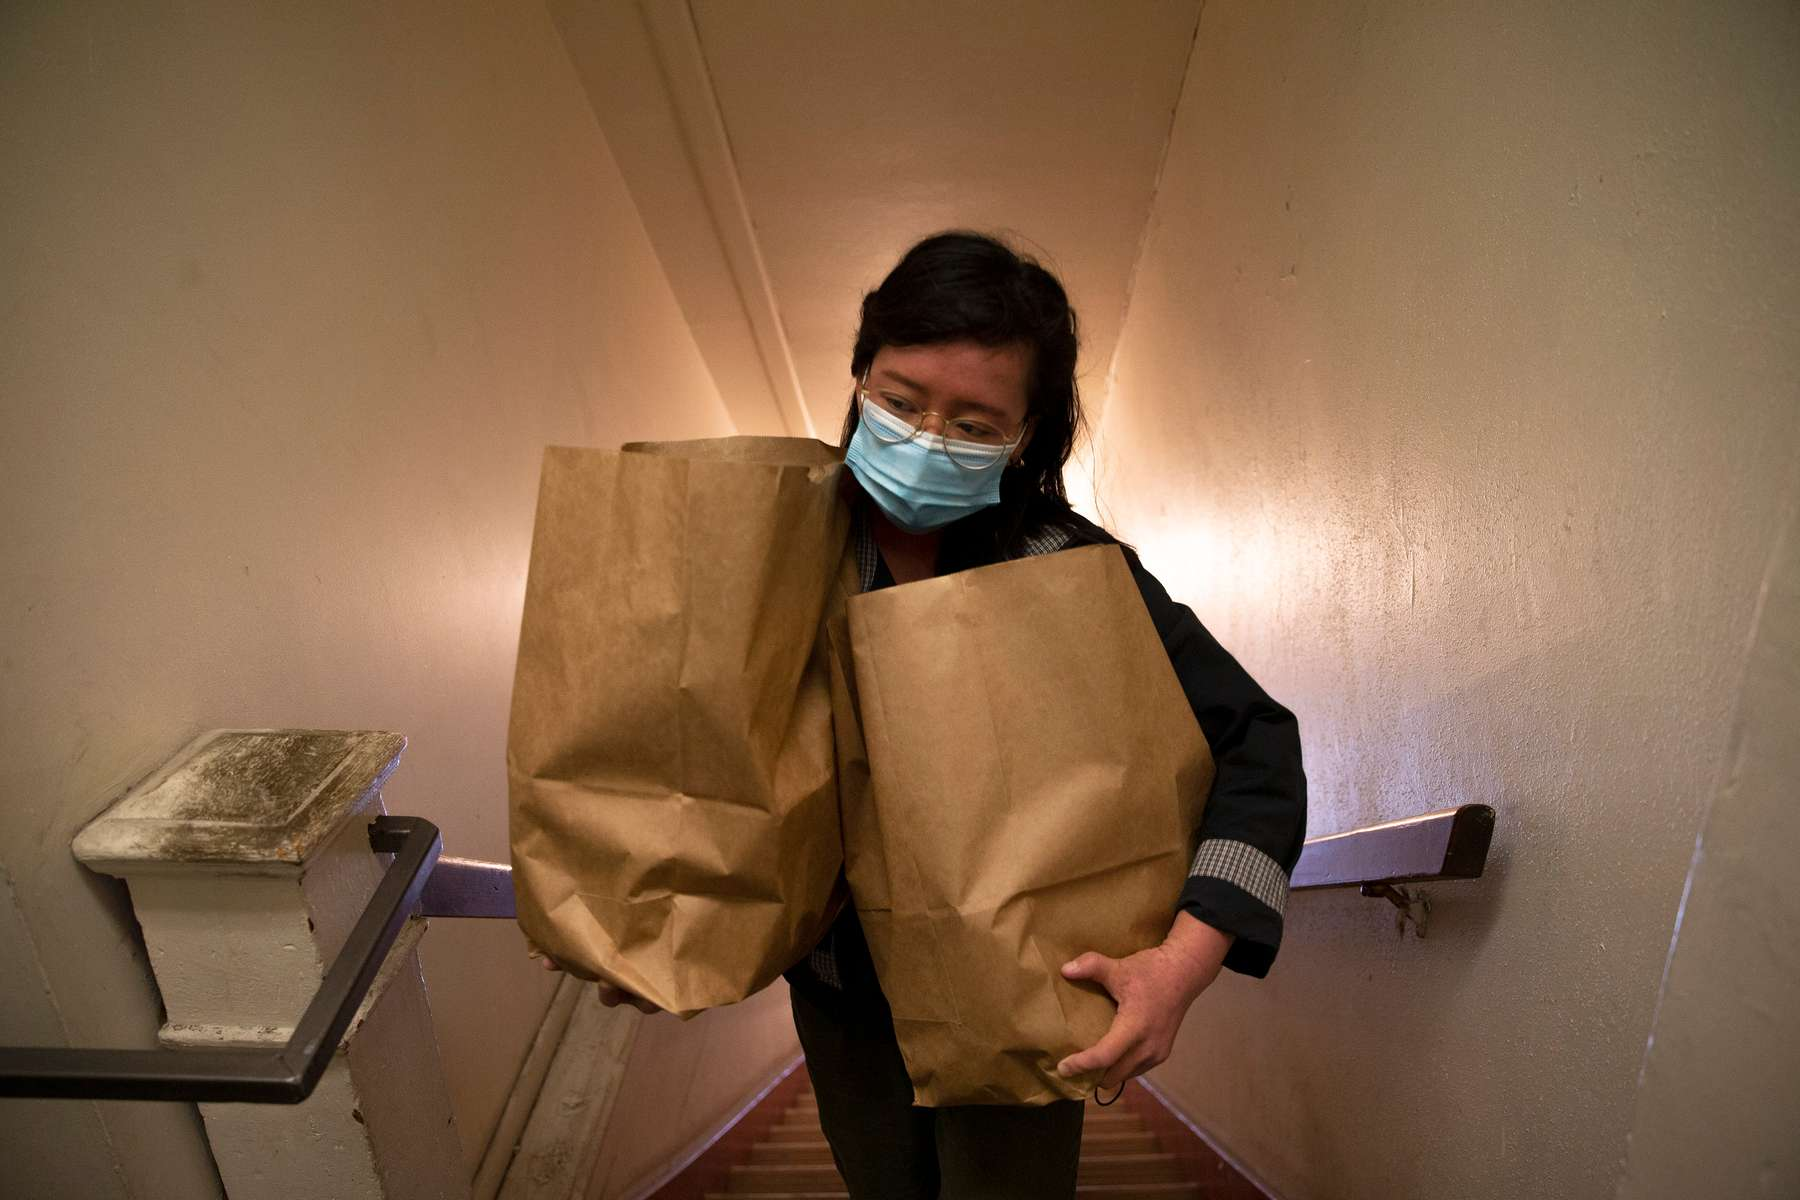 """Volunteer Carmen Hom, from the InterIm Community Development Association, delivers groceries to elderly and low-income residents in the Chinatown-International District in Seattle, Washington on May 28, 2020. Since the coronavirus pandemic began, non-profits in the area banded together to prepare and deliver hot meals and groceries to people afraid to go out because of racial profiling and fear of catching Covid-19. Says Vincent Kwan, the program manager for InterIm, """"It's called disaster gentrification. An already vulnerable neighborhood - having the impacts of COVID is already accelerating the gentrification that's already happening. So, we're very concerned about that."""""""